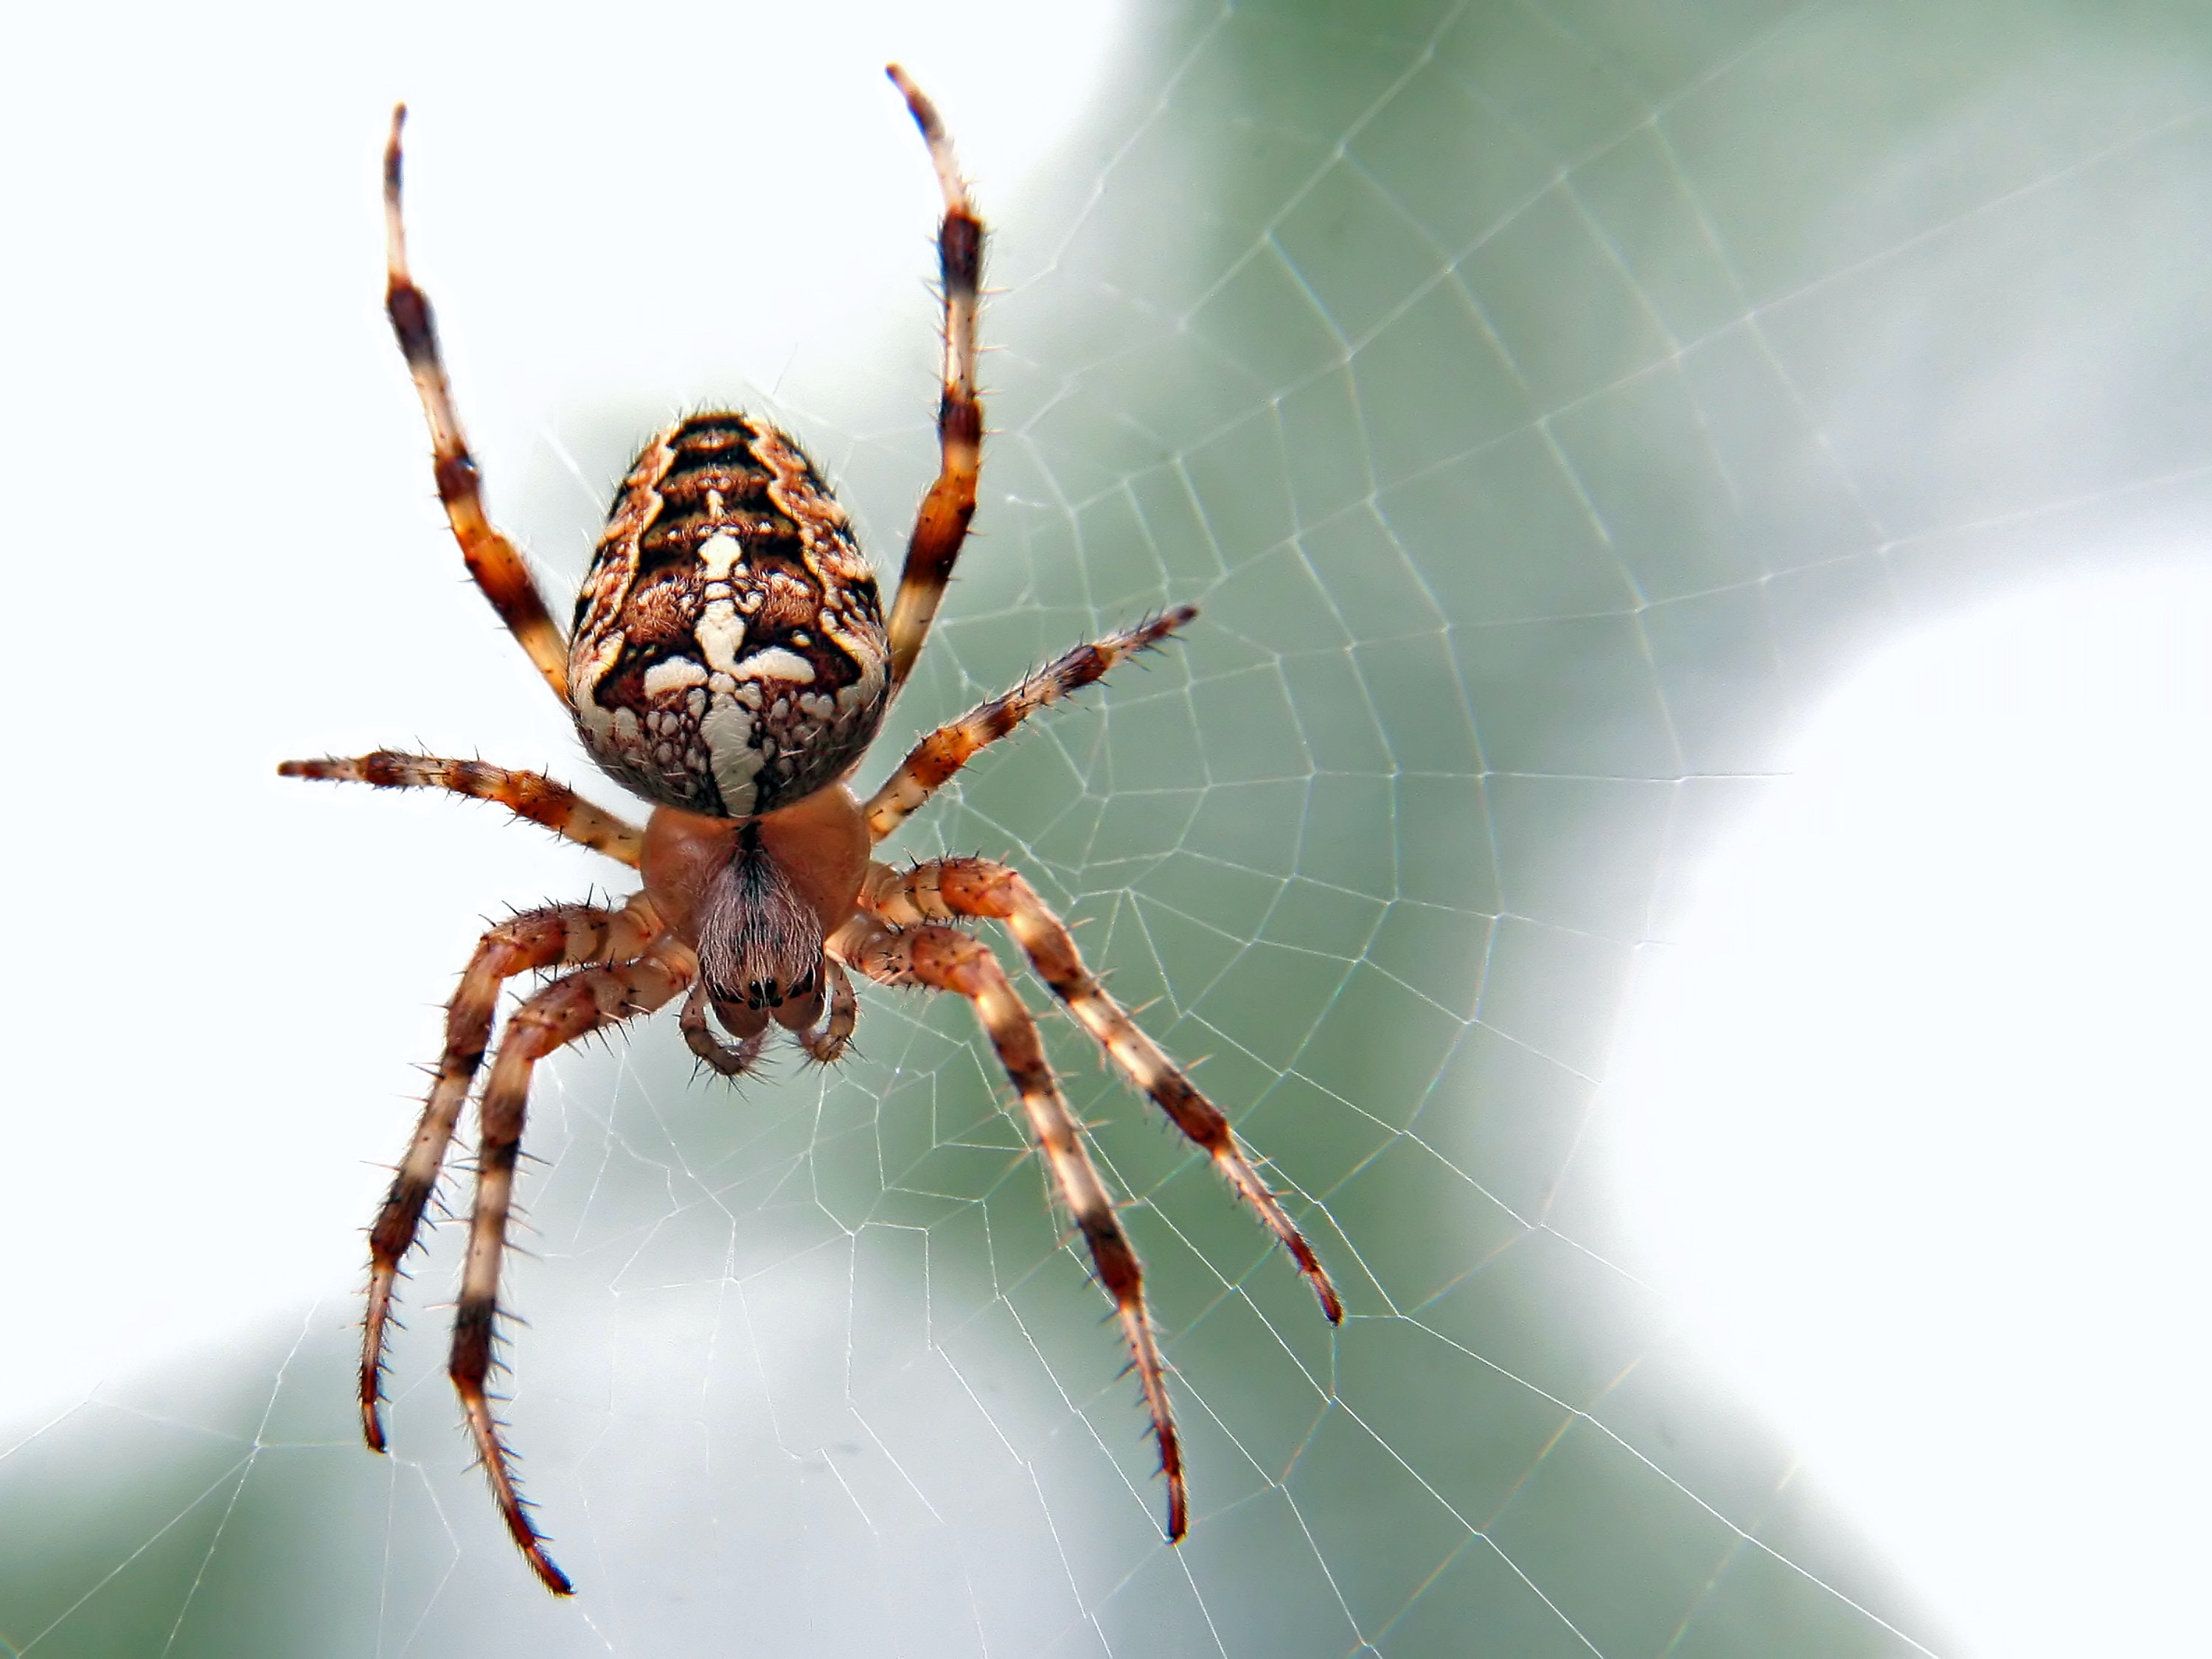 Spider Insect   3000x2250   Download HD Wallpaper   WallpaperTip 3000x2250